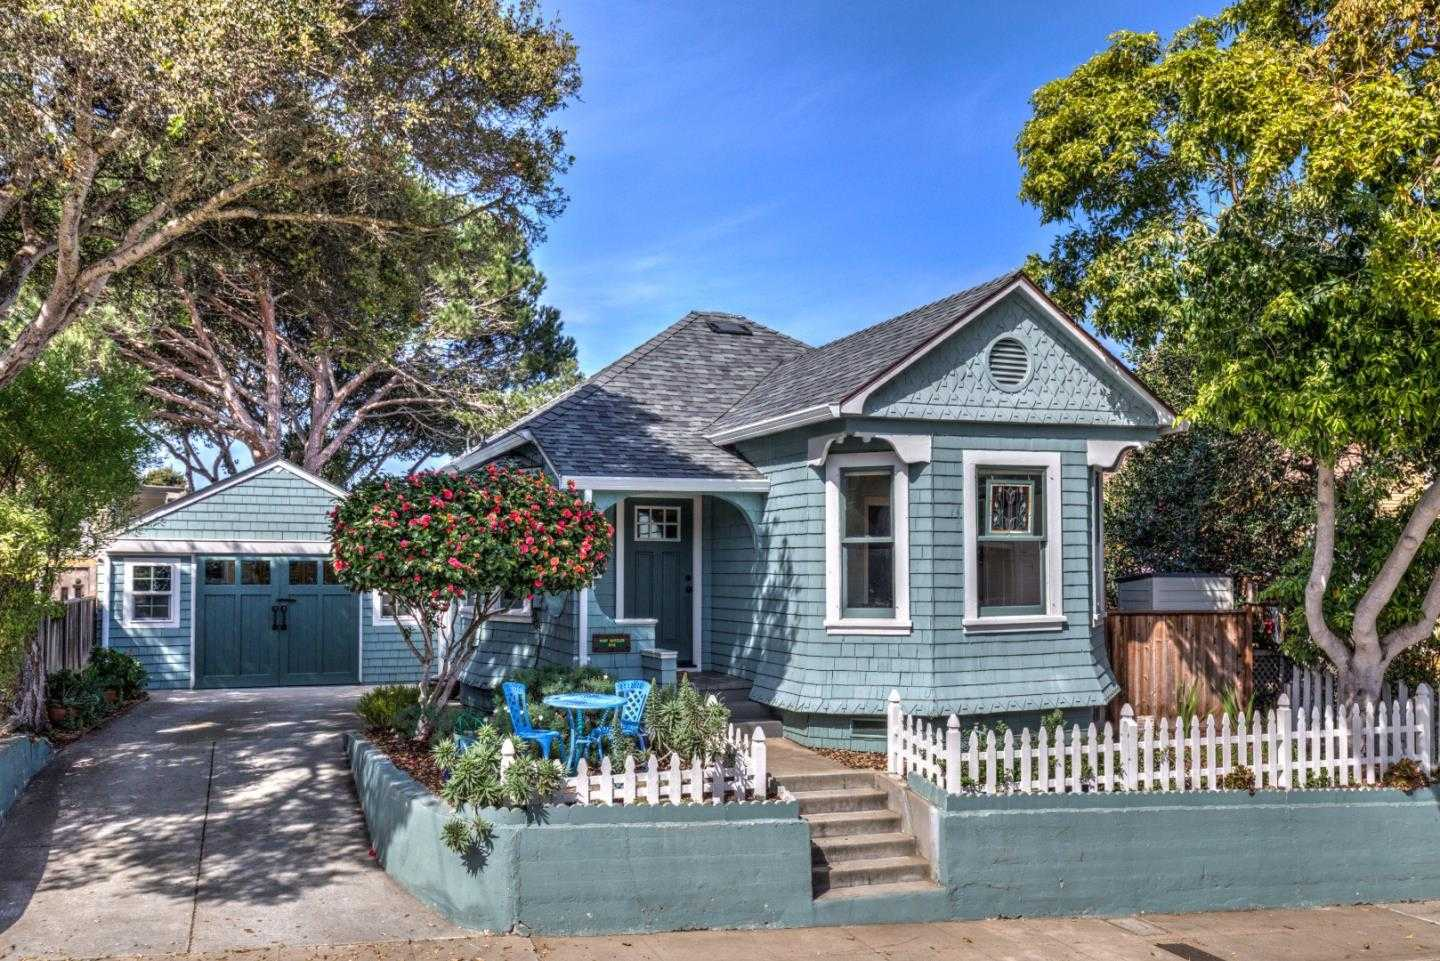 $799,000 - 2Br/1Ba -  for Sale in Pacific Grove